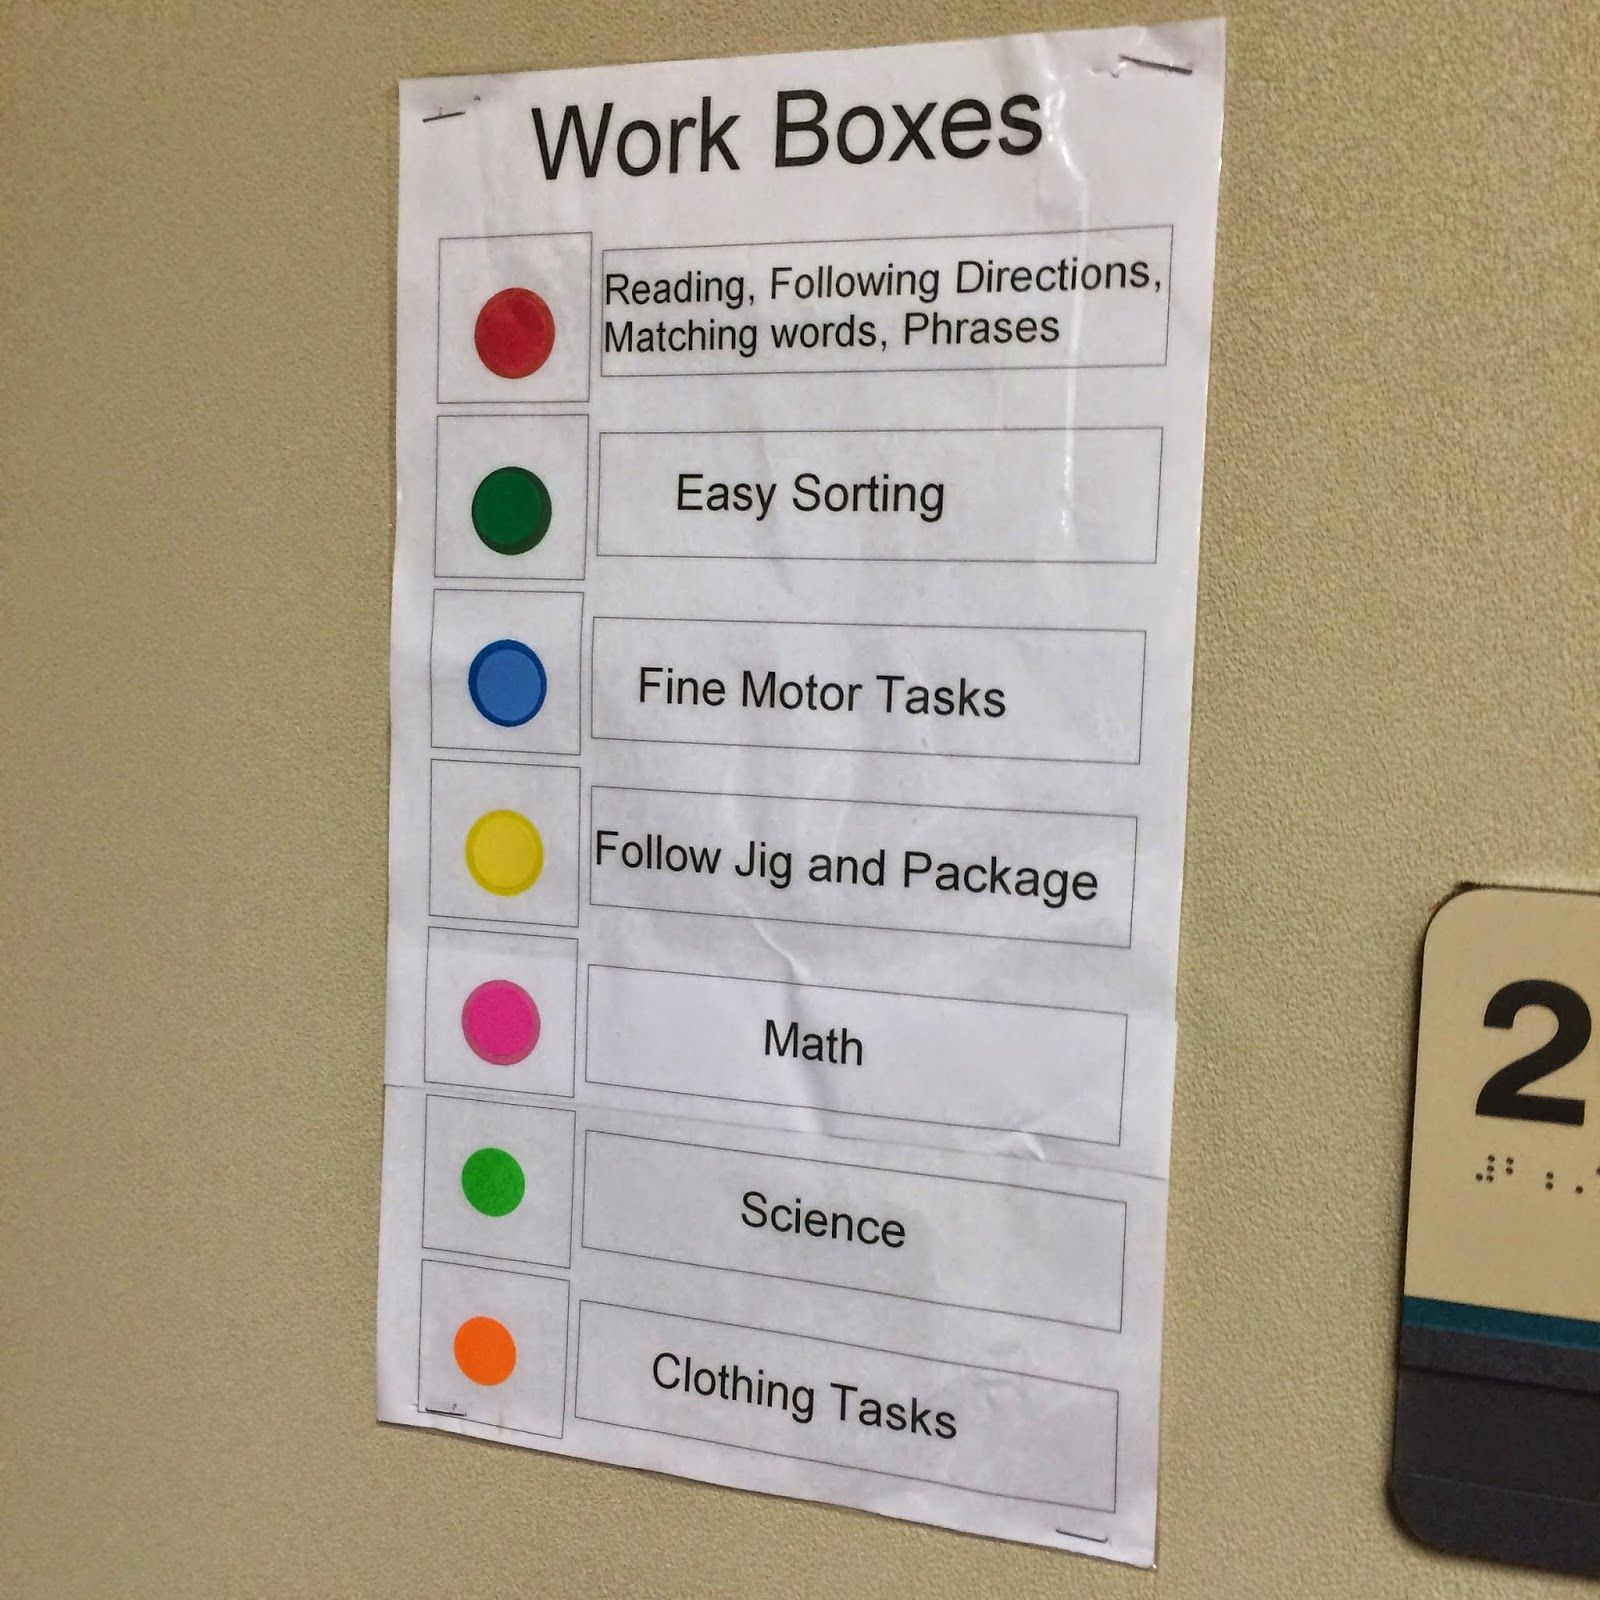 Awesome Way To Organize And Group Task Boxes